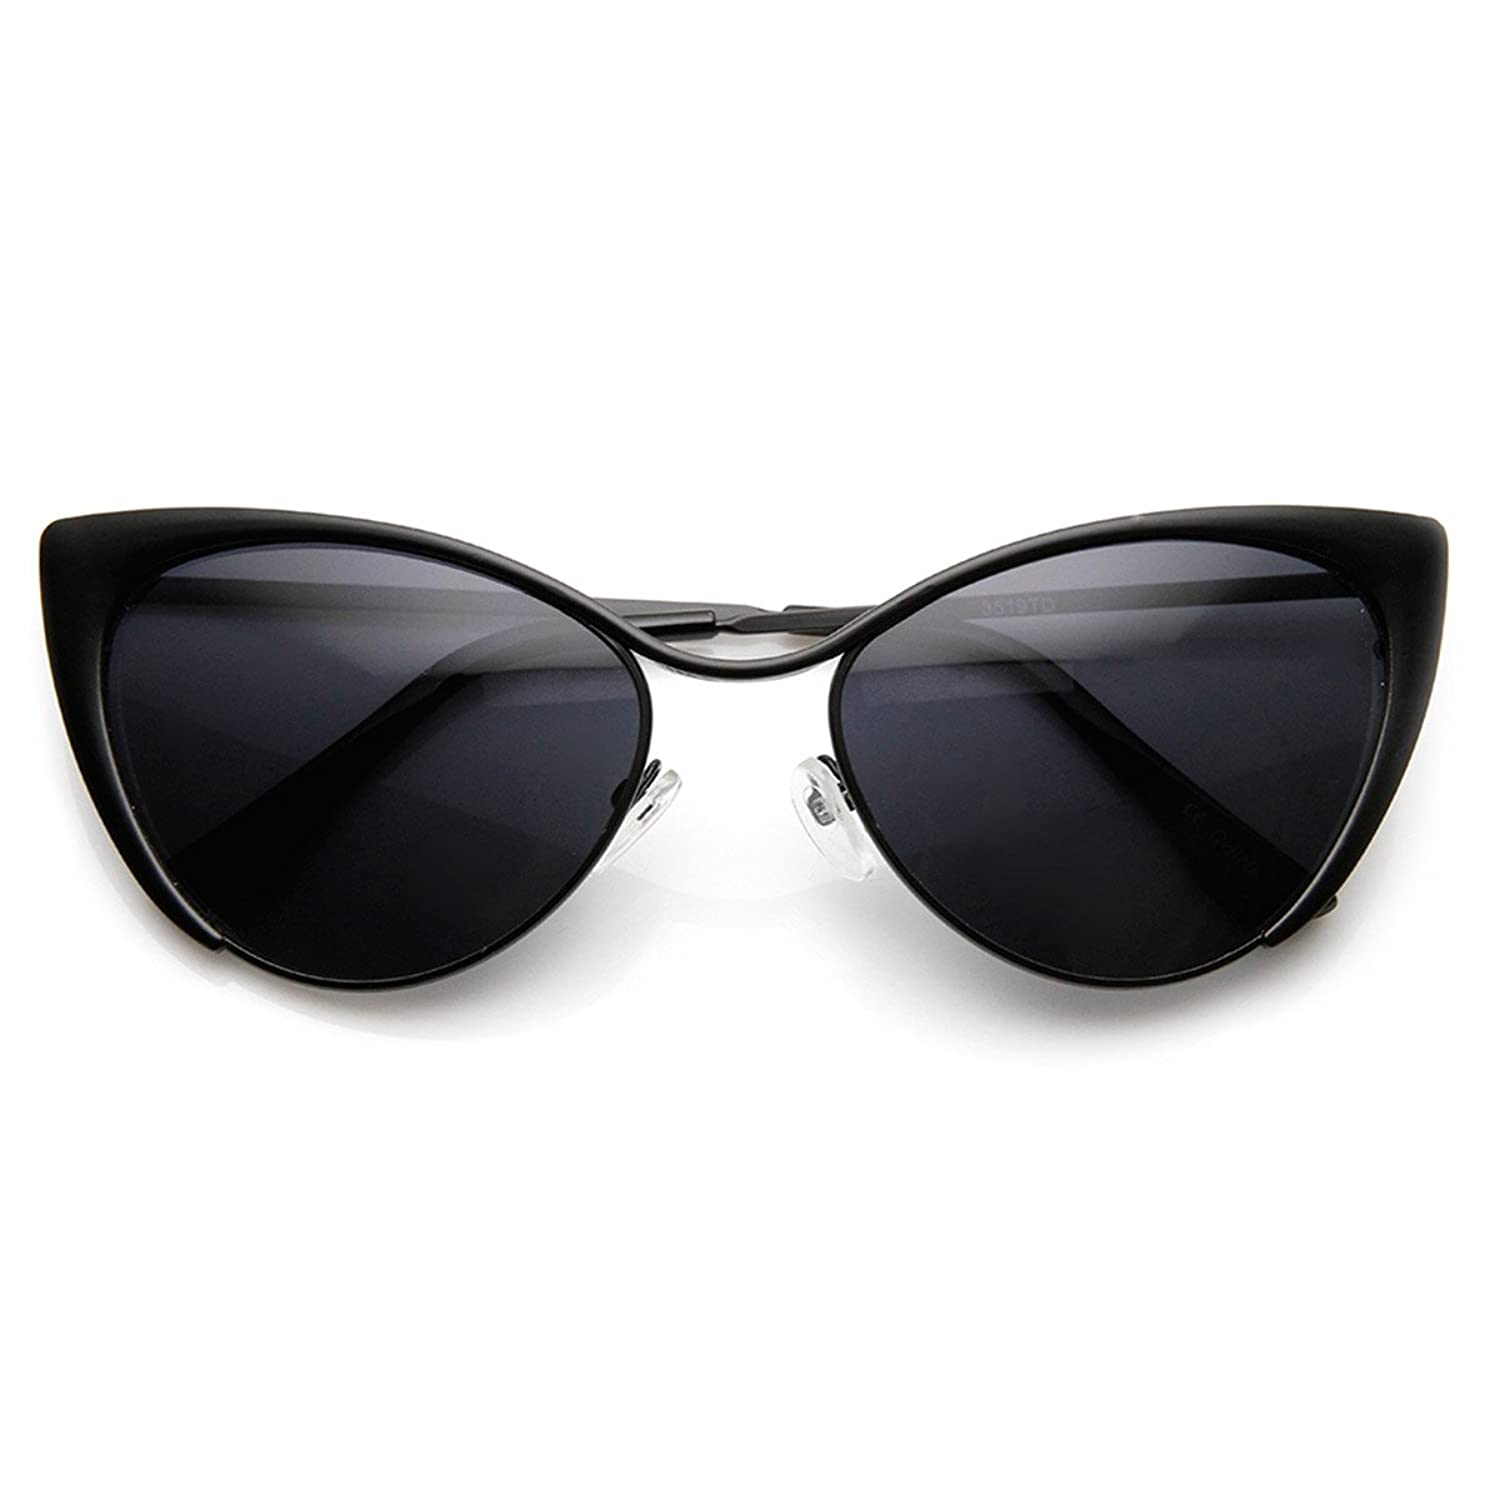 Thin Cat Eye Sunglasses Cat Eye Sunglasses